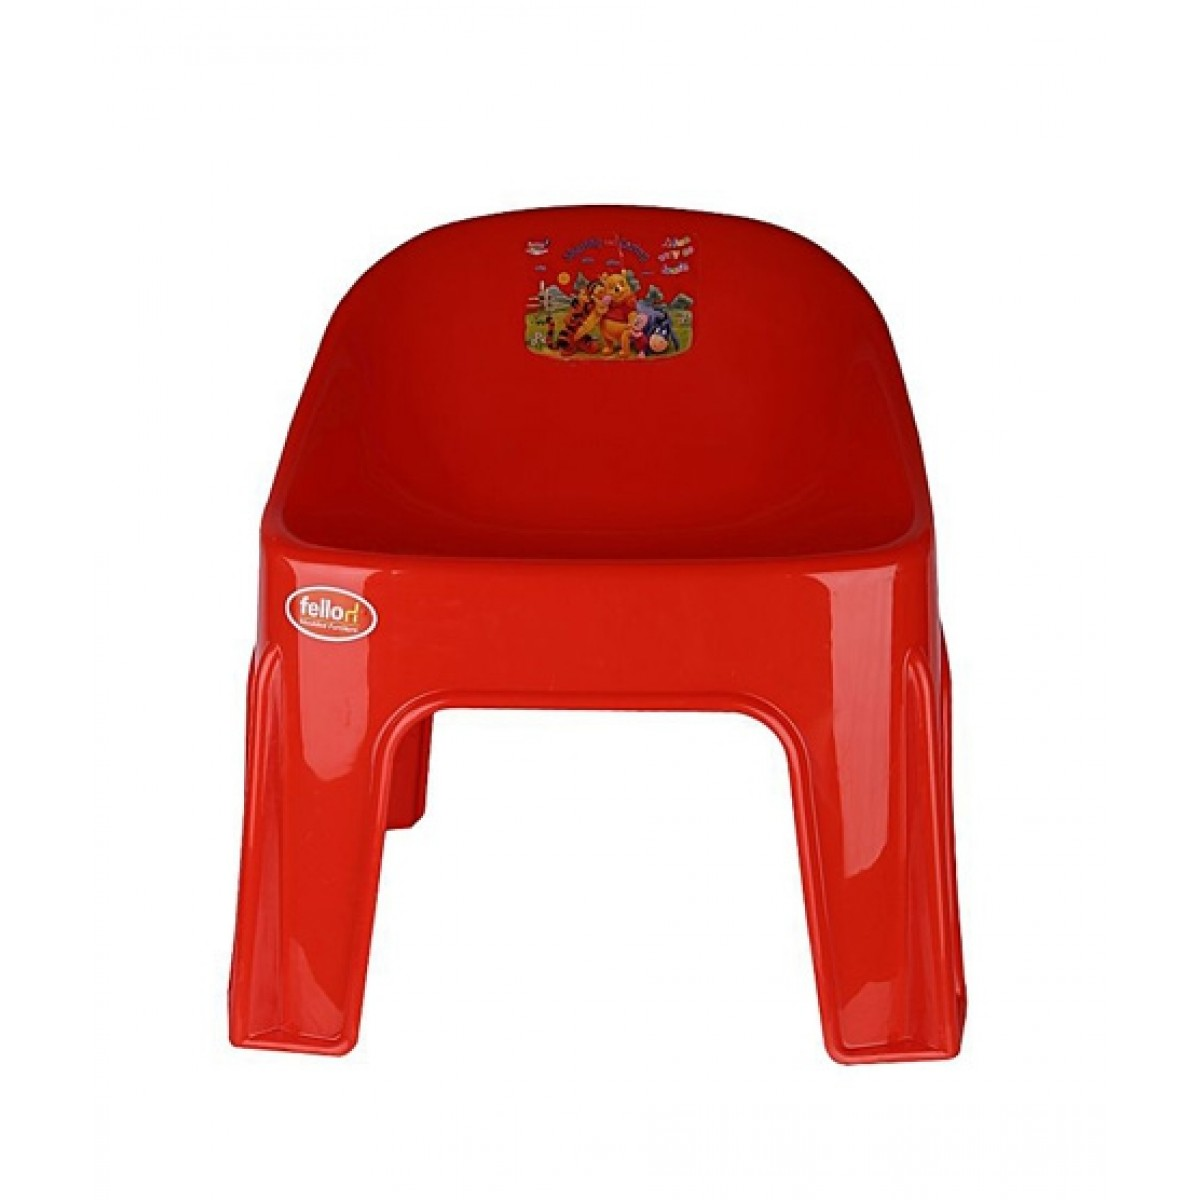 Plastic Kids Chairs Fello Plastic Chair For Kids